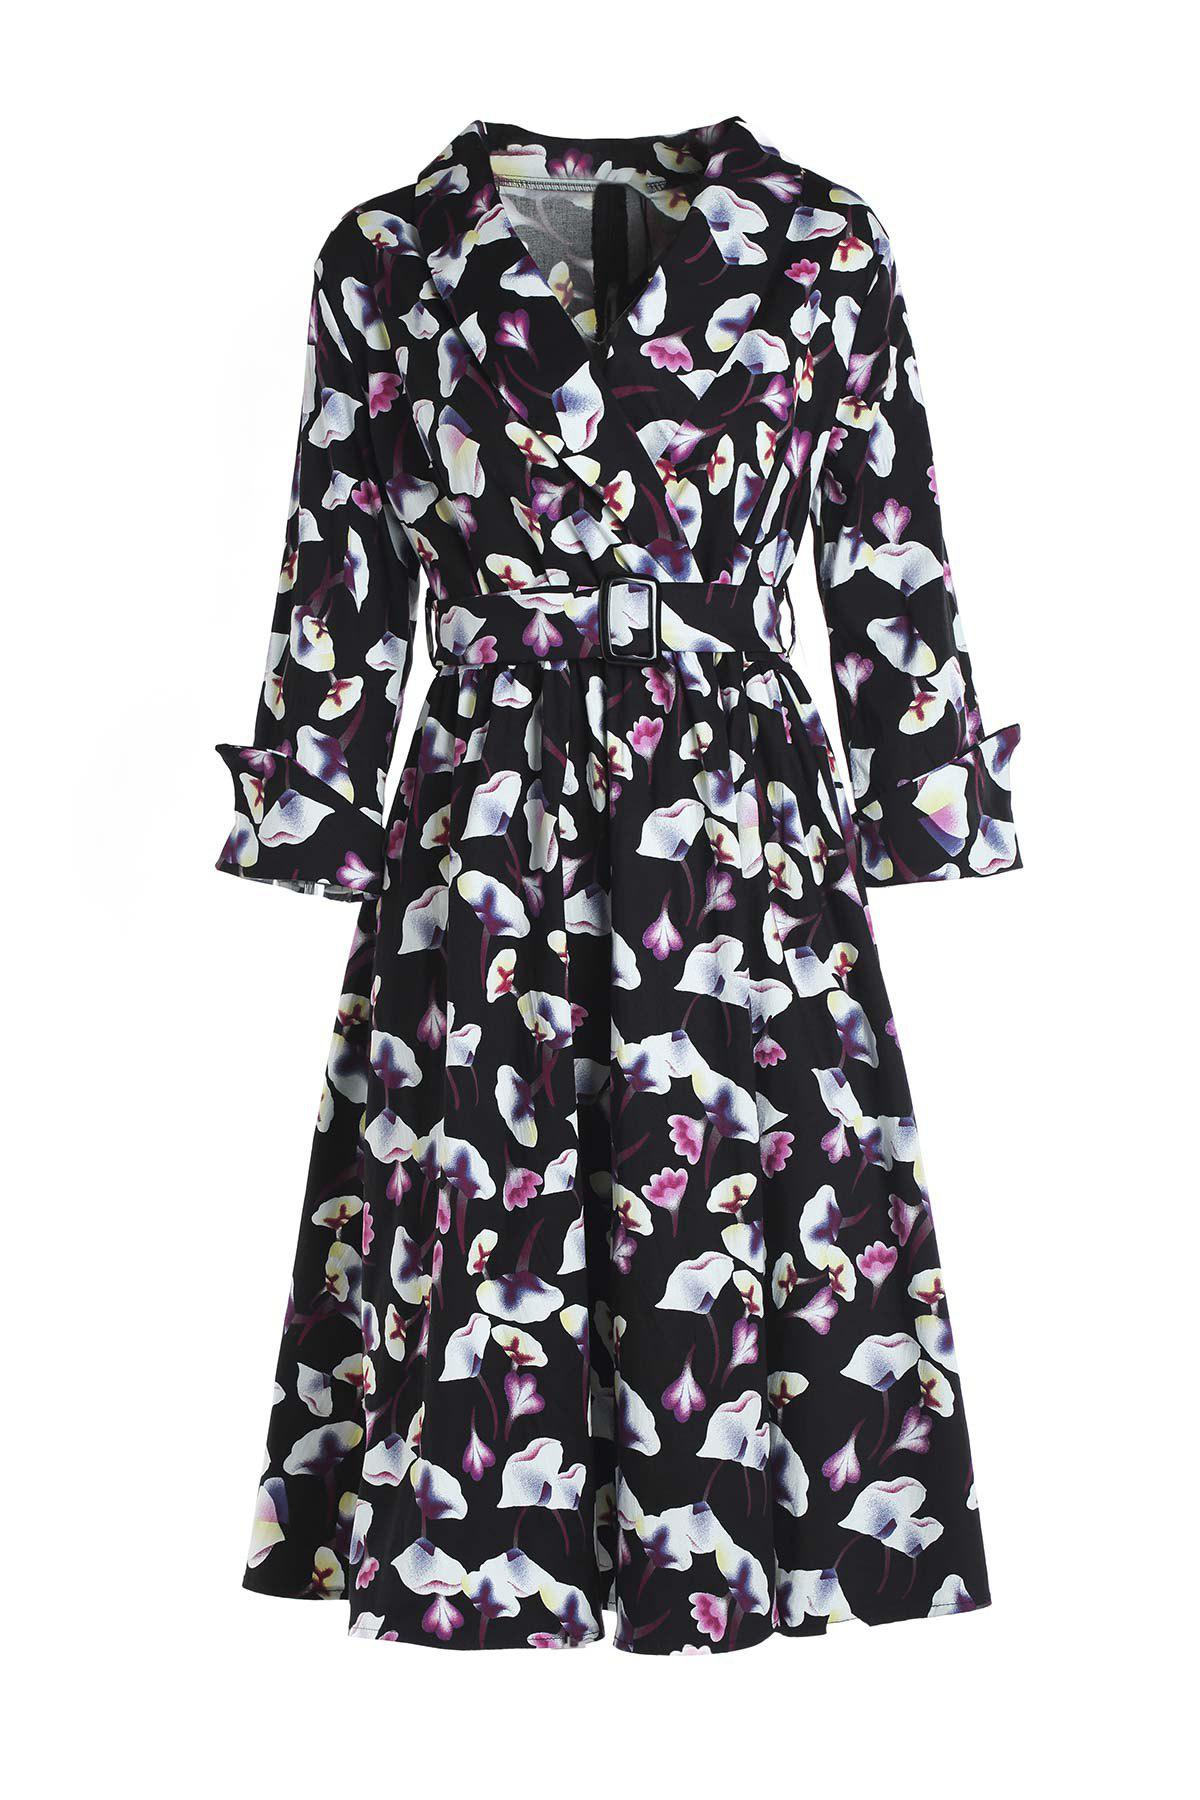 Vintage Style 3/4 Sleeve Shawl Collar Floral Print Women's Dress - BLACK M